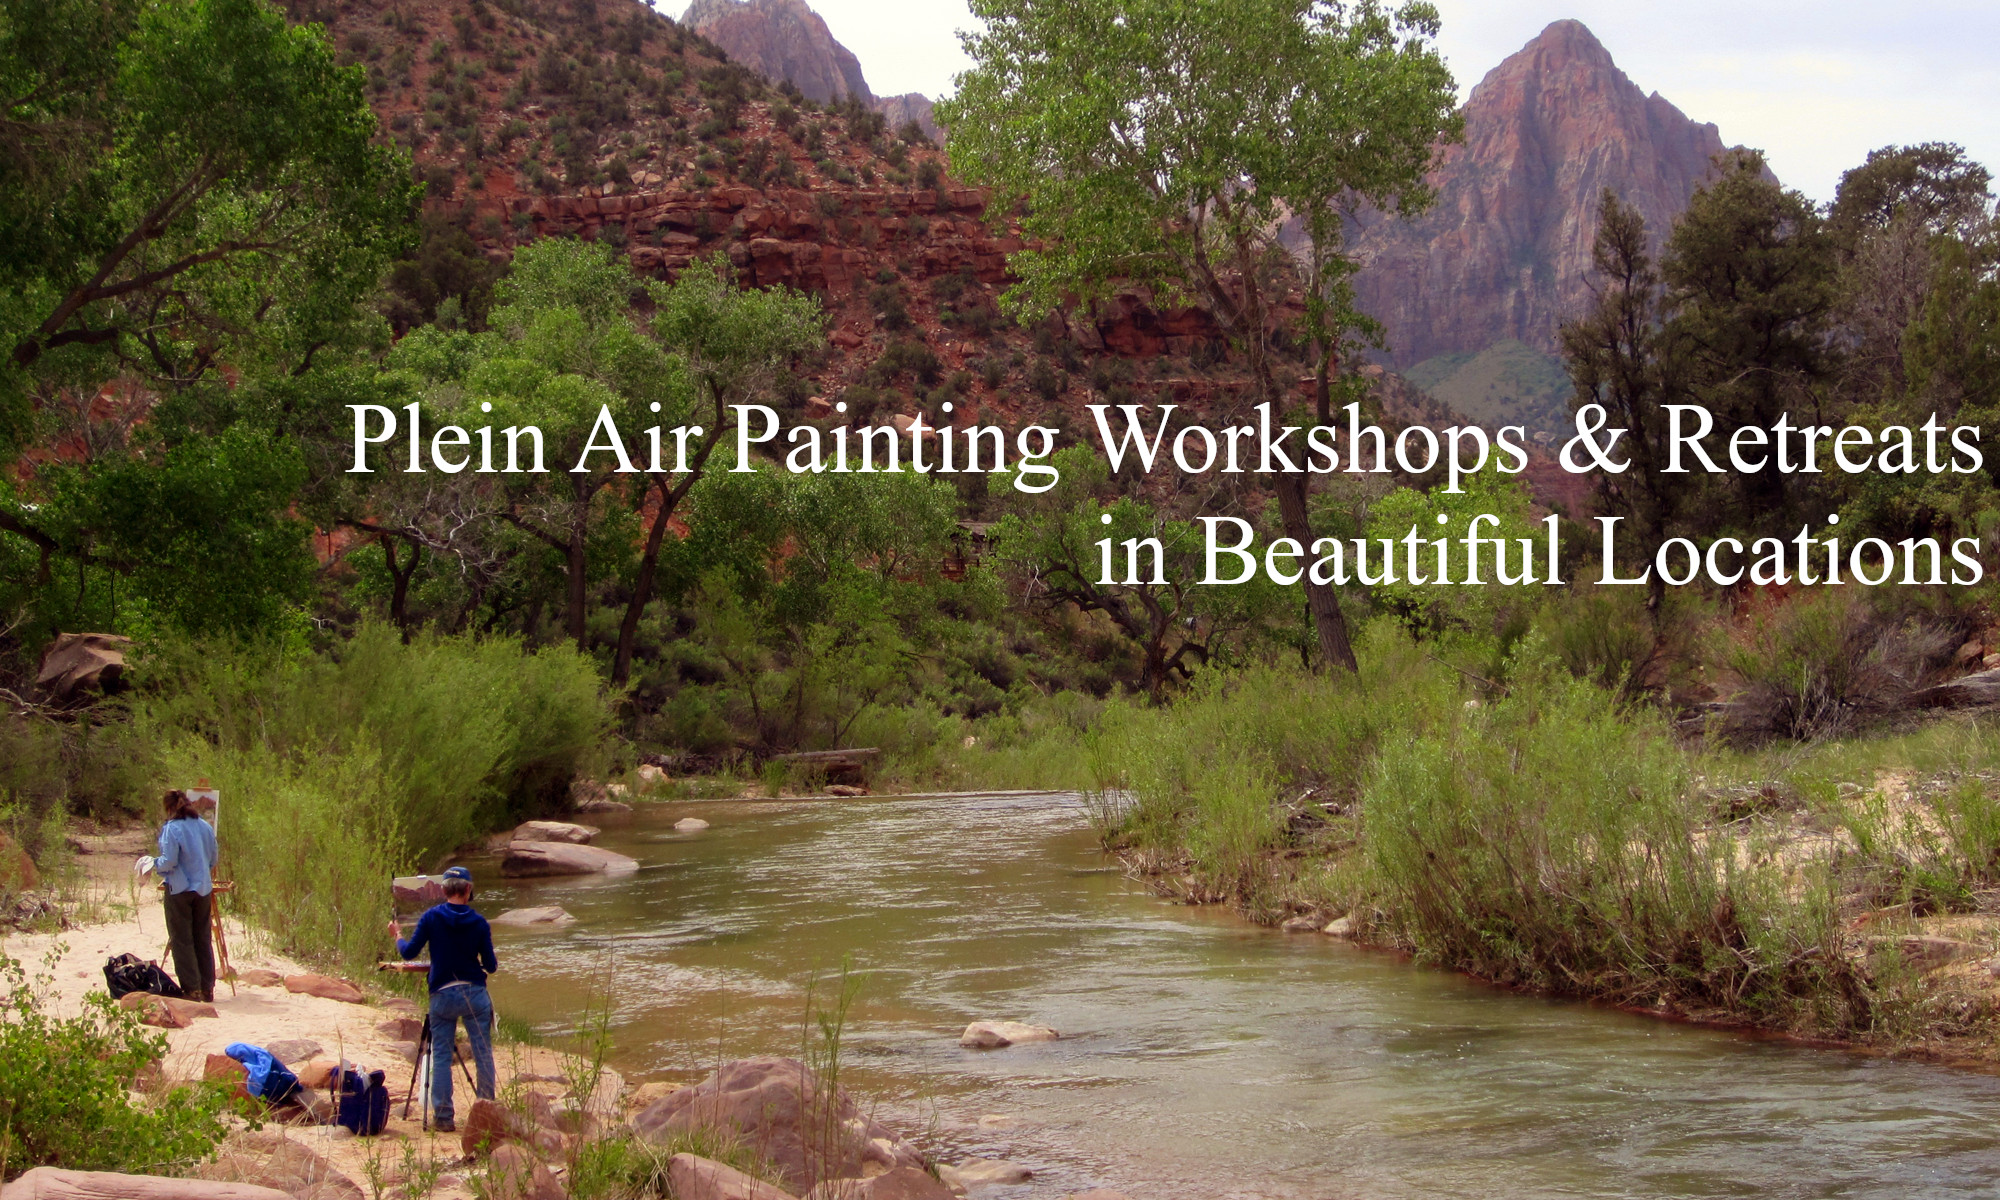 Plein air painting workshops by landscape artist Michael Chesley Johnson